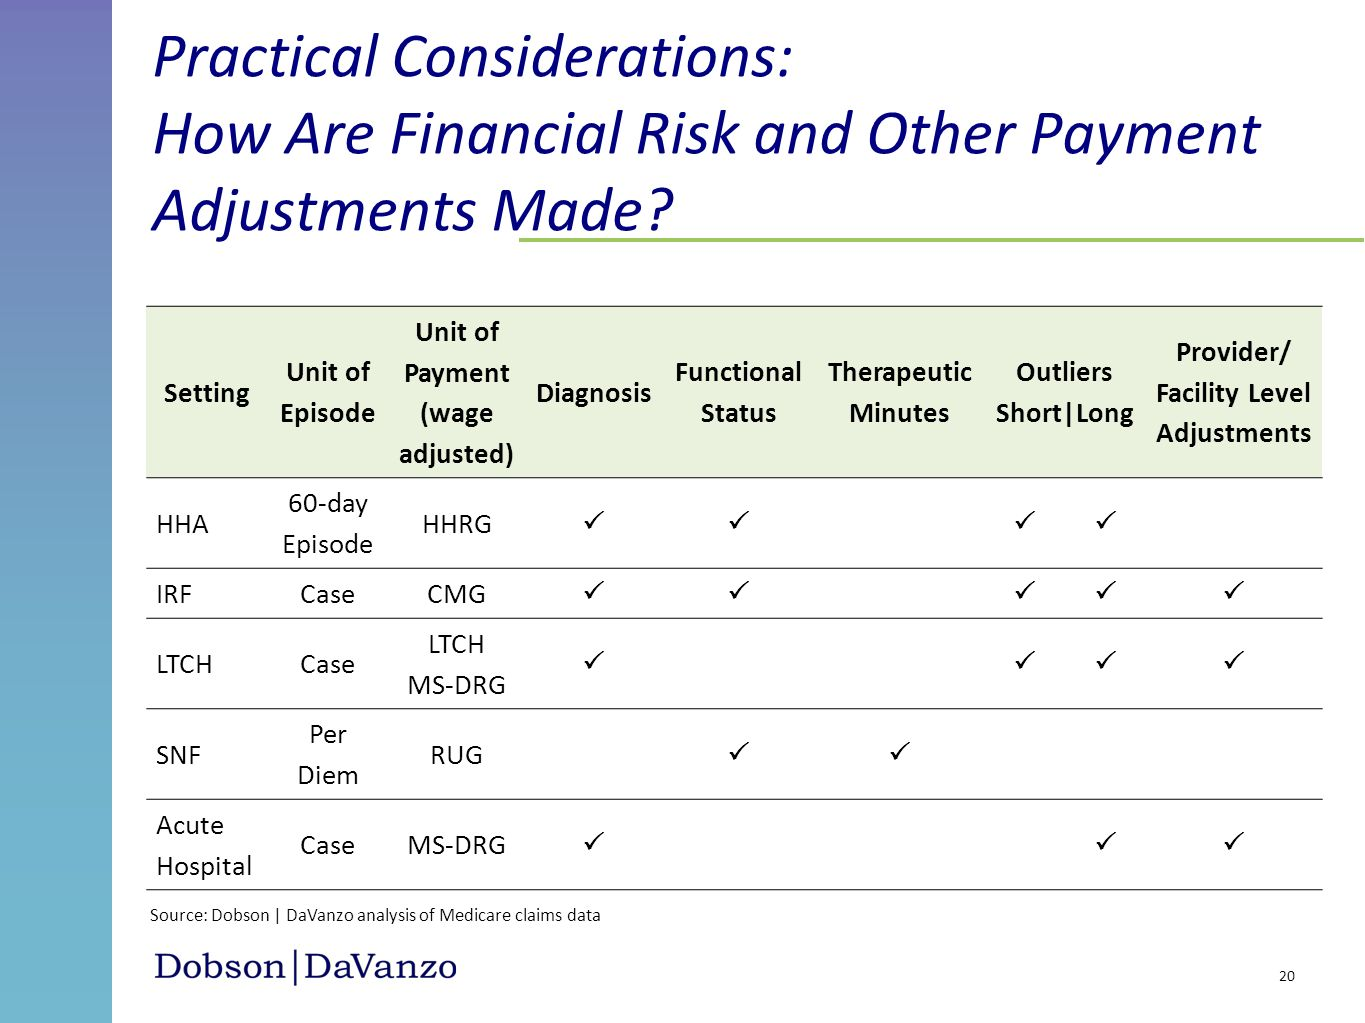 Practical Considerations: How Are Financial Risk and Other Payment Adjustments Made? 20 Source: Dobson | DaVanzo analysis of Medicare claims data Sett